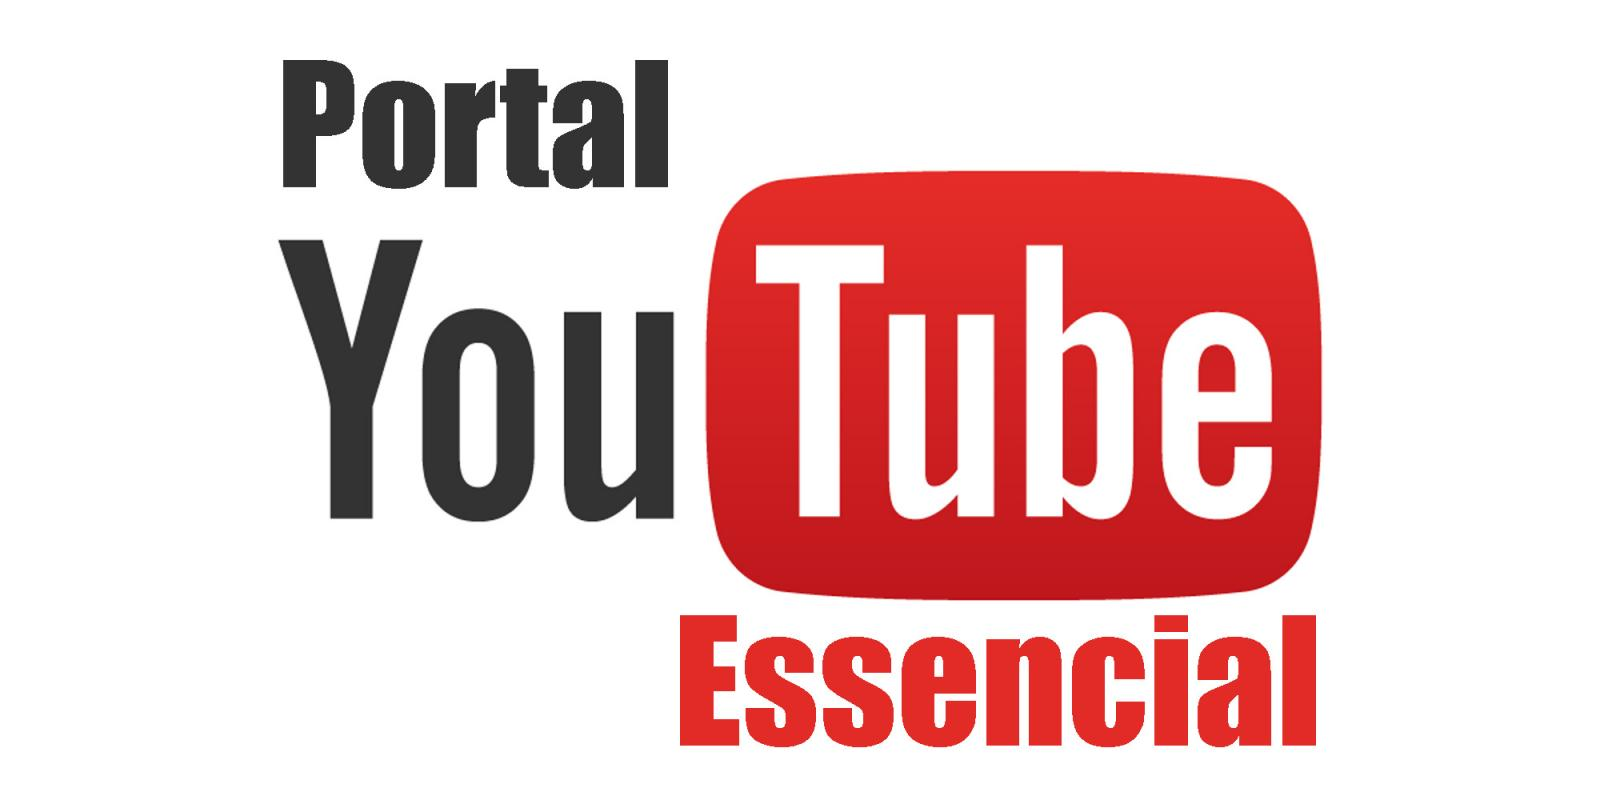 Portal Youtube Essencial